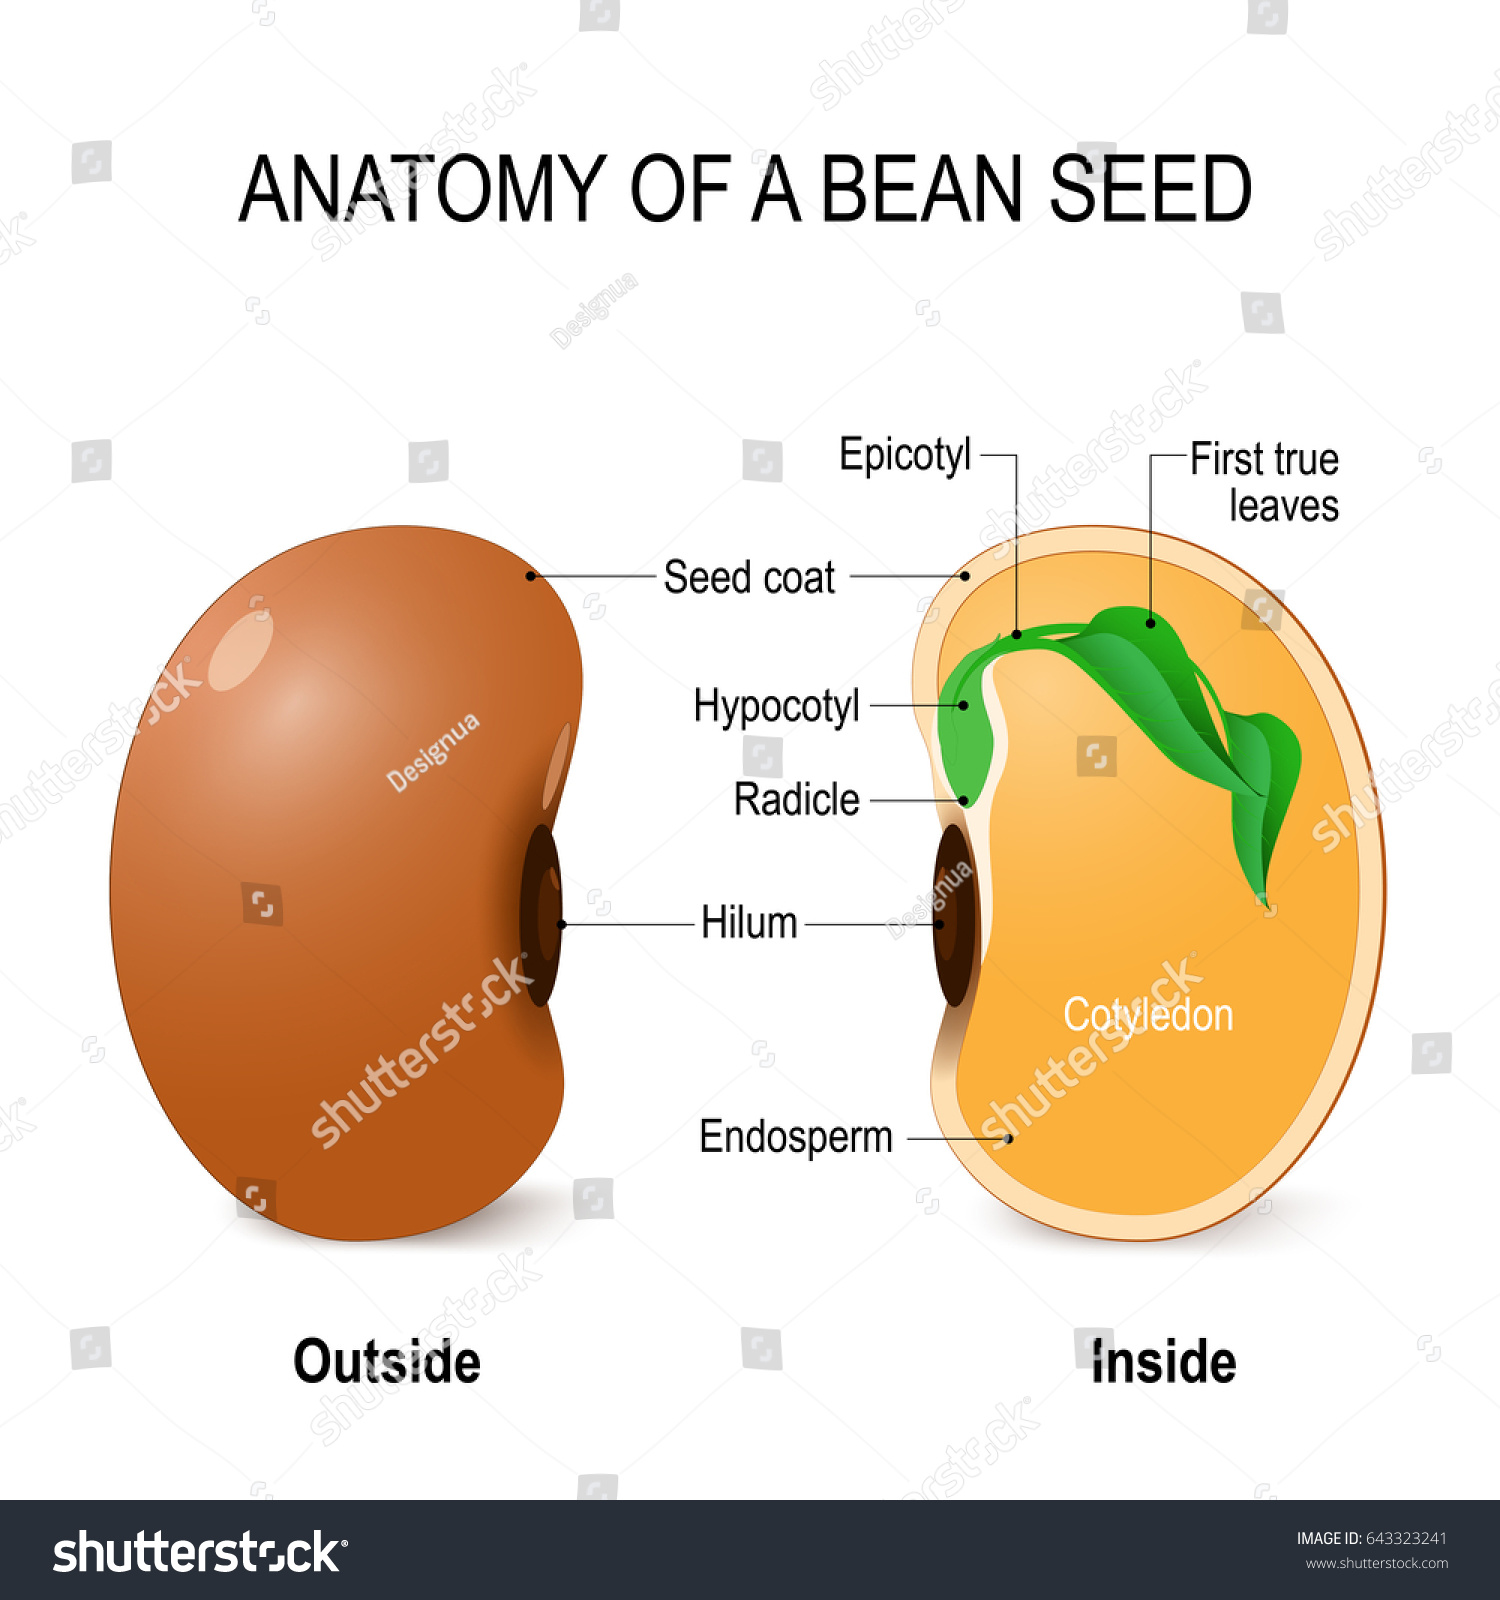 Anatomy bean seed diagram inside outside stock illustration anatomy of a bean seed diagram inside and outside of the bean seed pooptronica Images